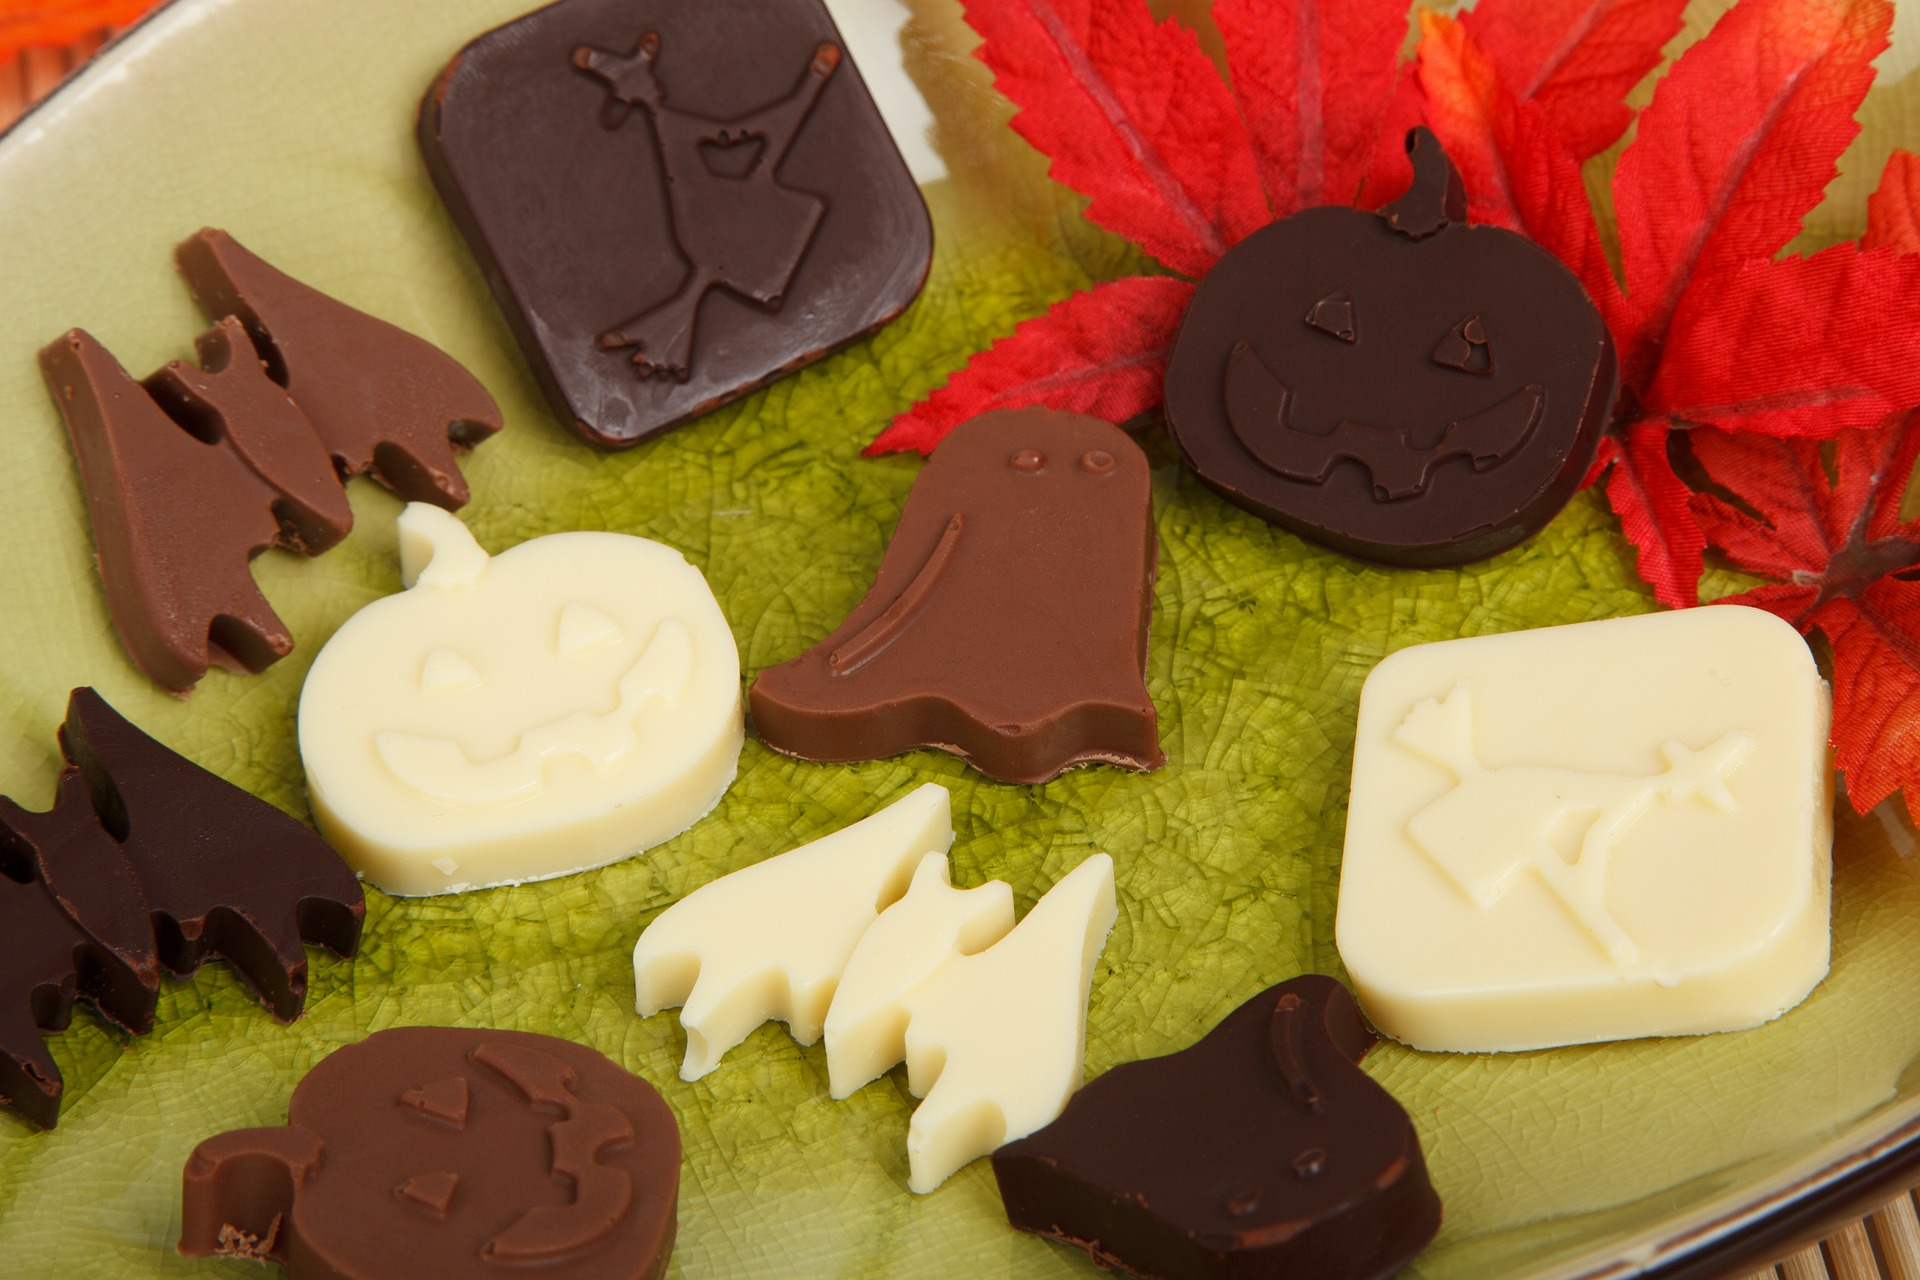 AterImber.com - No. Mad. - 3 Tips on How to Have a Zero Waste Halloween - Halloween Themed Chocolate - Halloween, candy, chocolate, vegan, zero waste, vegan food, food blogger, zero waste tips, homemade treats, candy, sustainable food